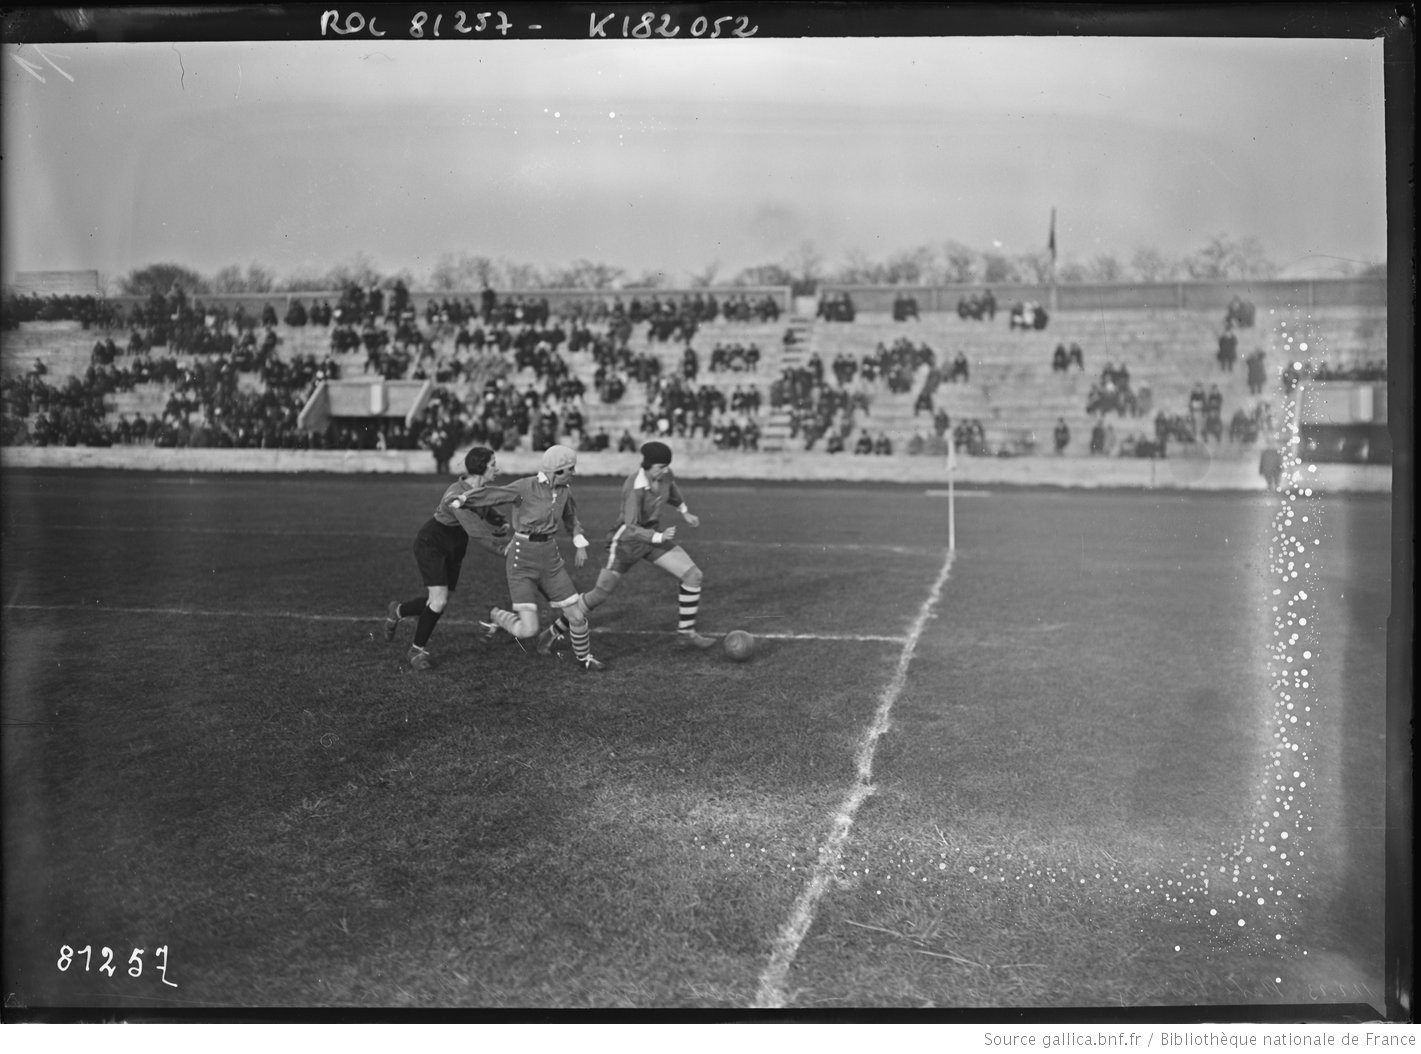 11-2-23, stade Pershing, coupe